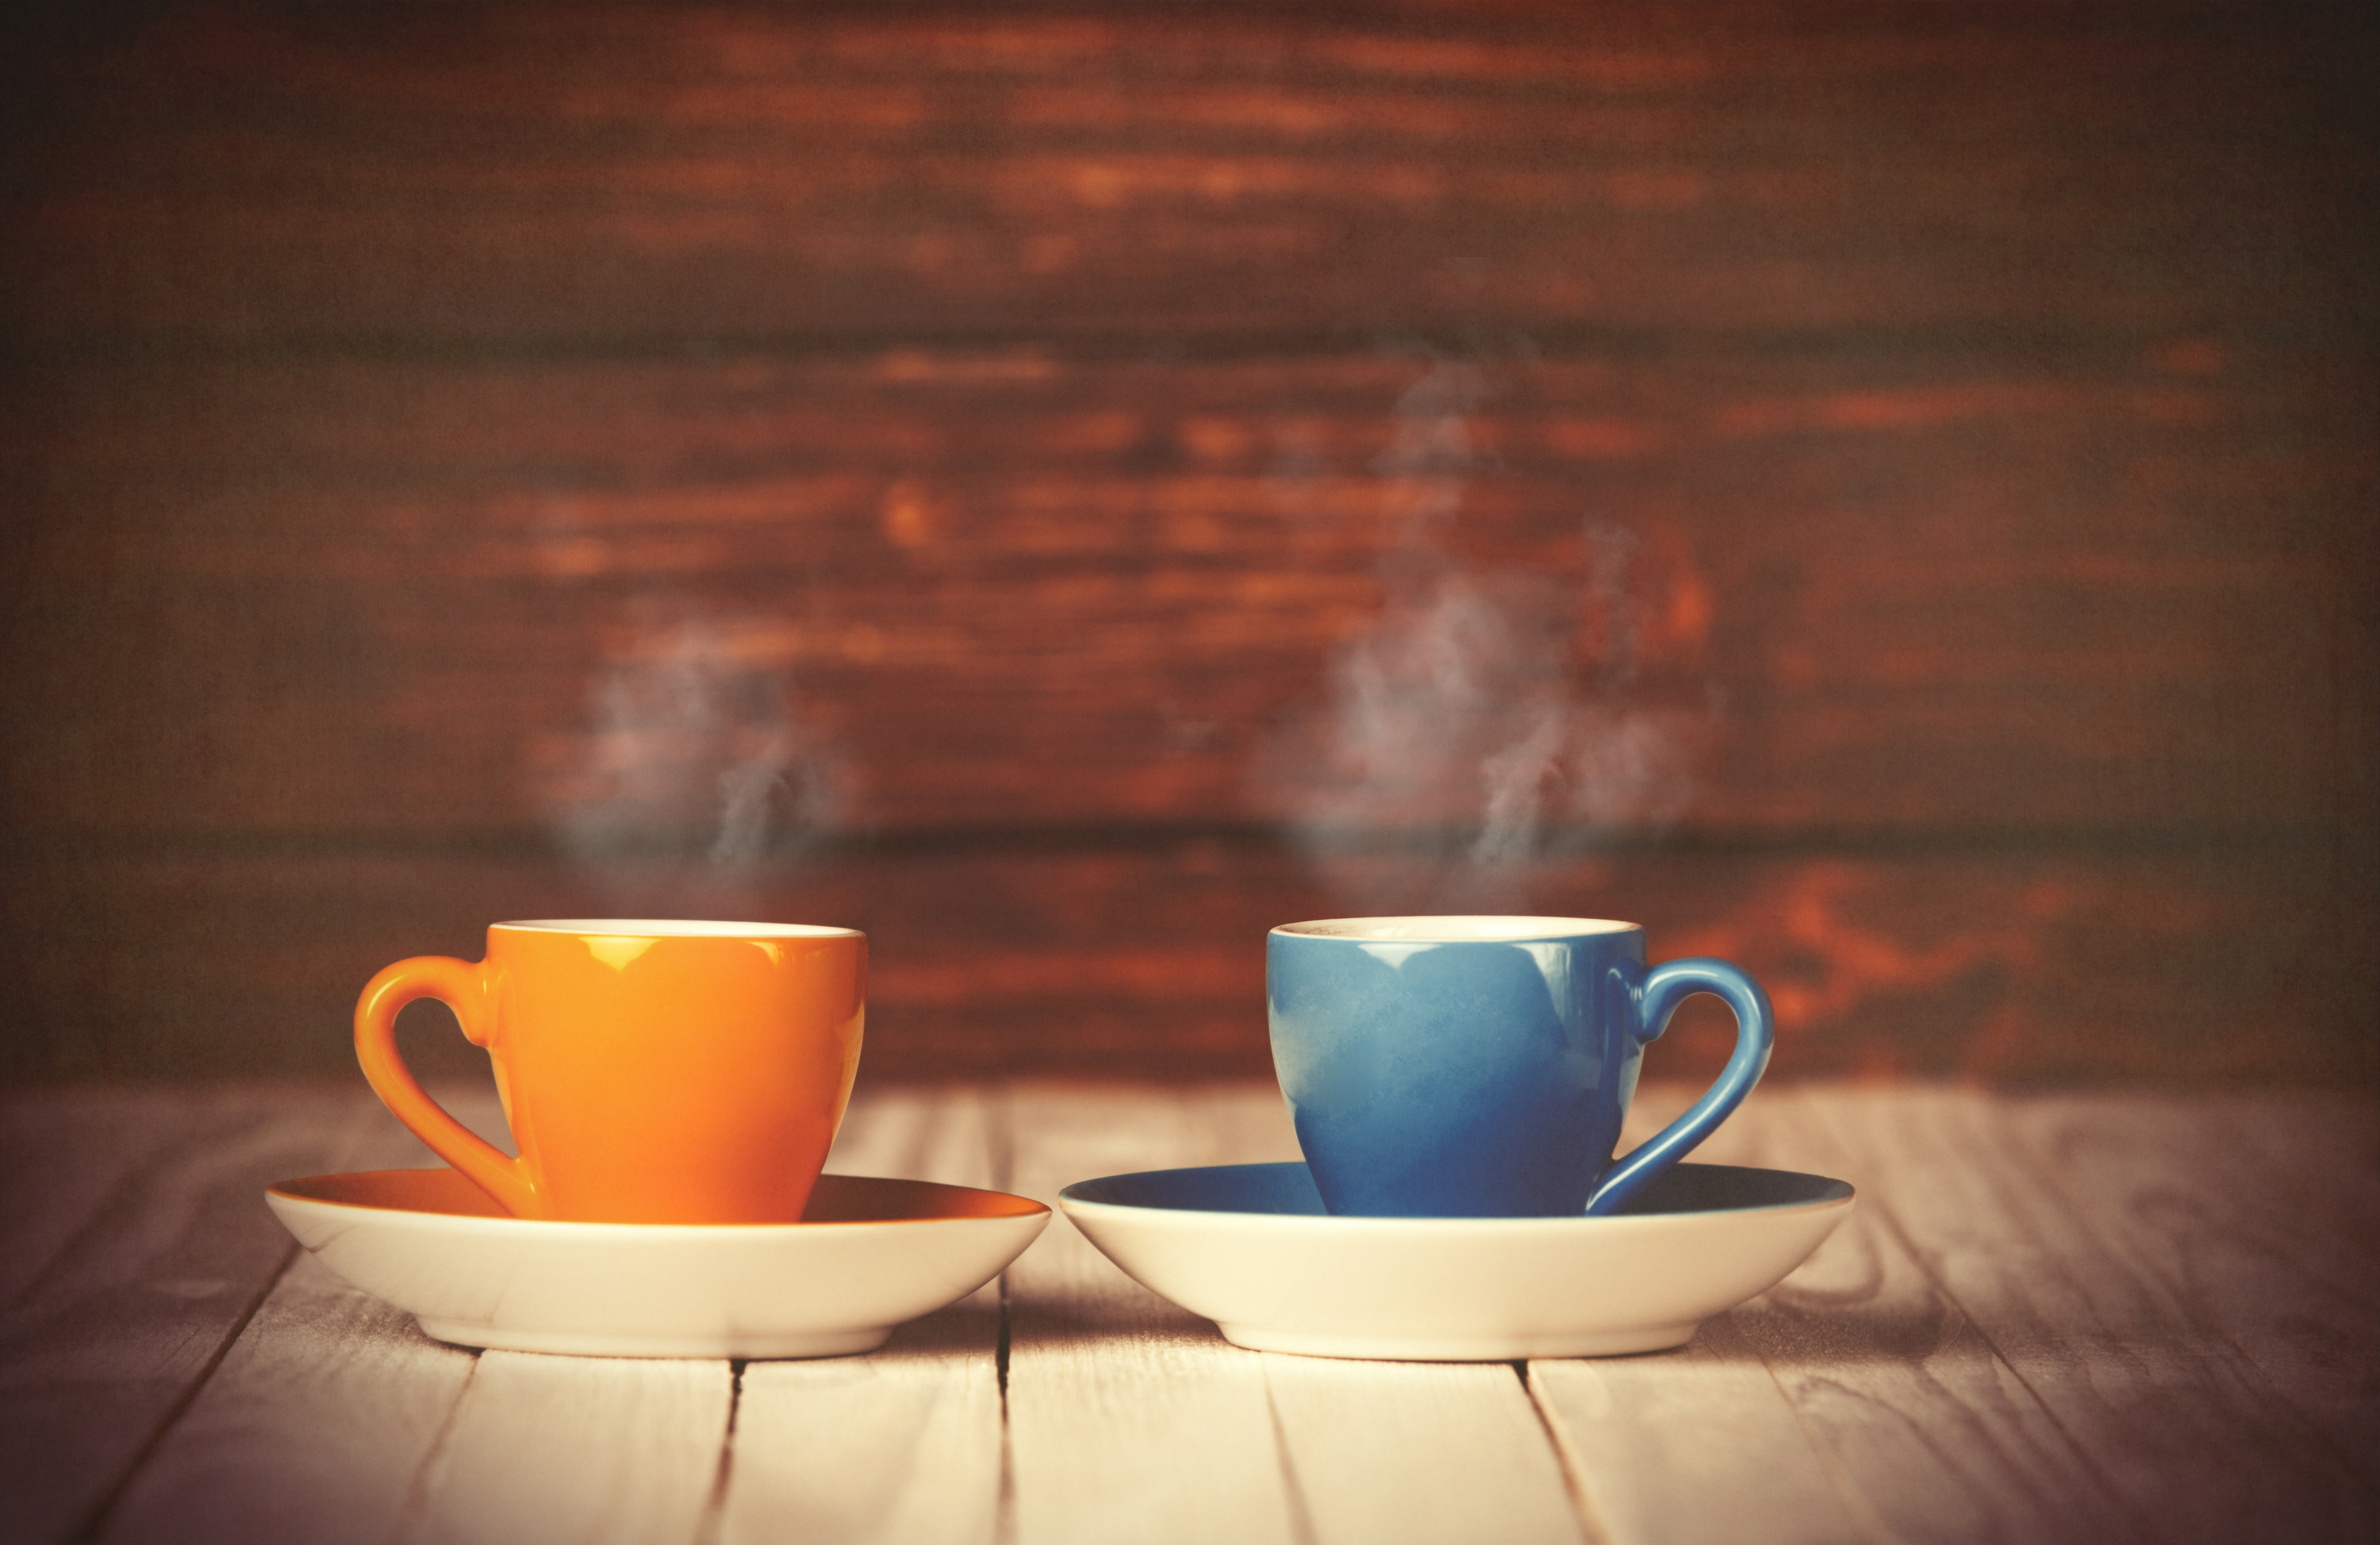 Two coffee cups - orange and blue (DiscipleSips FB page) 4-10-17